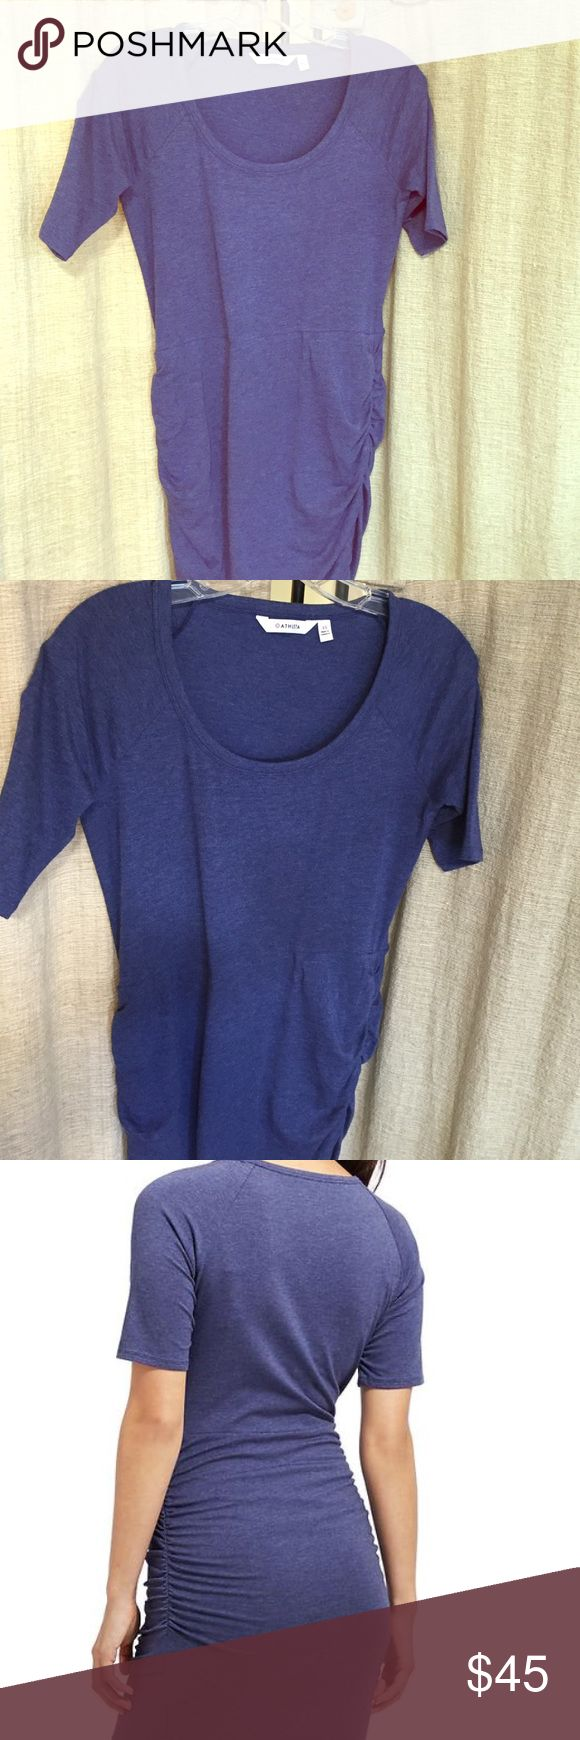 """Athleta Seeker Tee Dress/Wind Chill color XS NWT Athleta Seeker Tee Dress/Wind Chill color XS New with Tags! Never worn I have two of this dress and LOvE it! So easy to move around in. Perfect for parties, lite hiking, A night out or relaxing on the couch. Original Athleta design, scoop neck dress with 3/4 length sleeves, fitted bottom with rouching and """"V slit"""" Athleta Dresses Long Sleeve"""